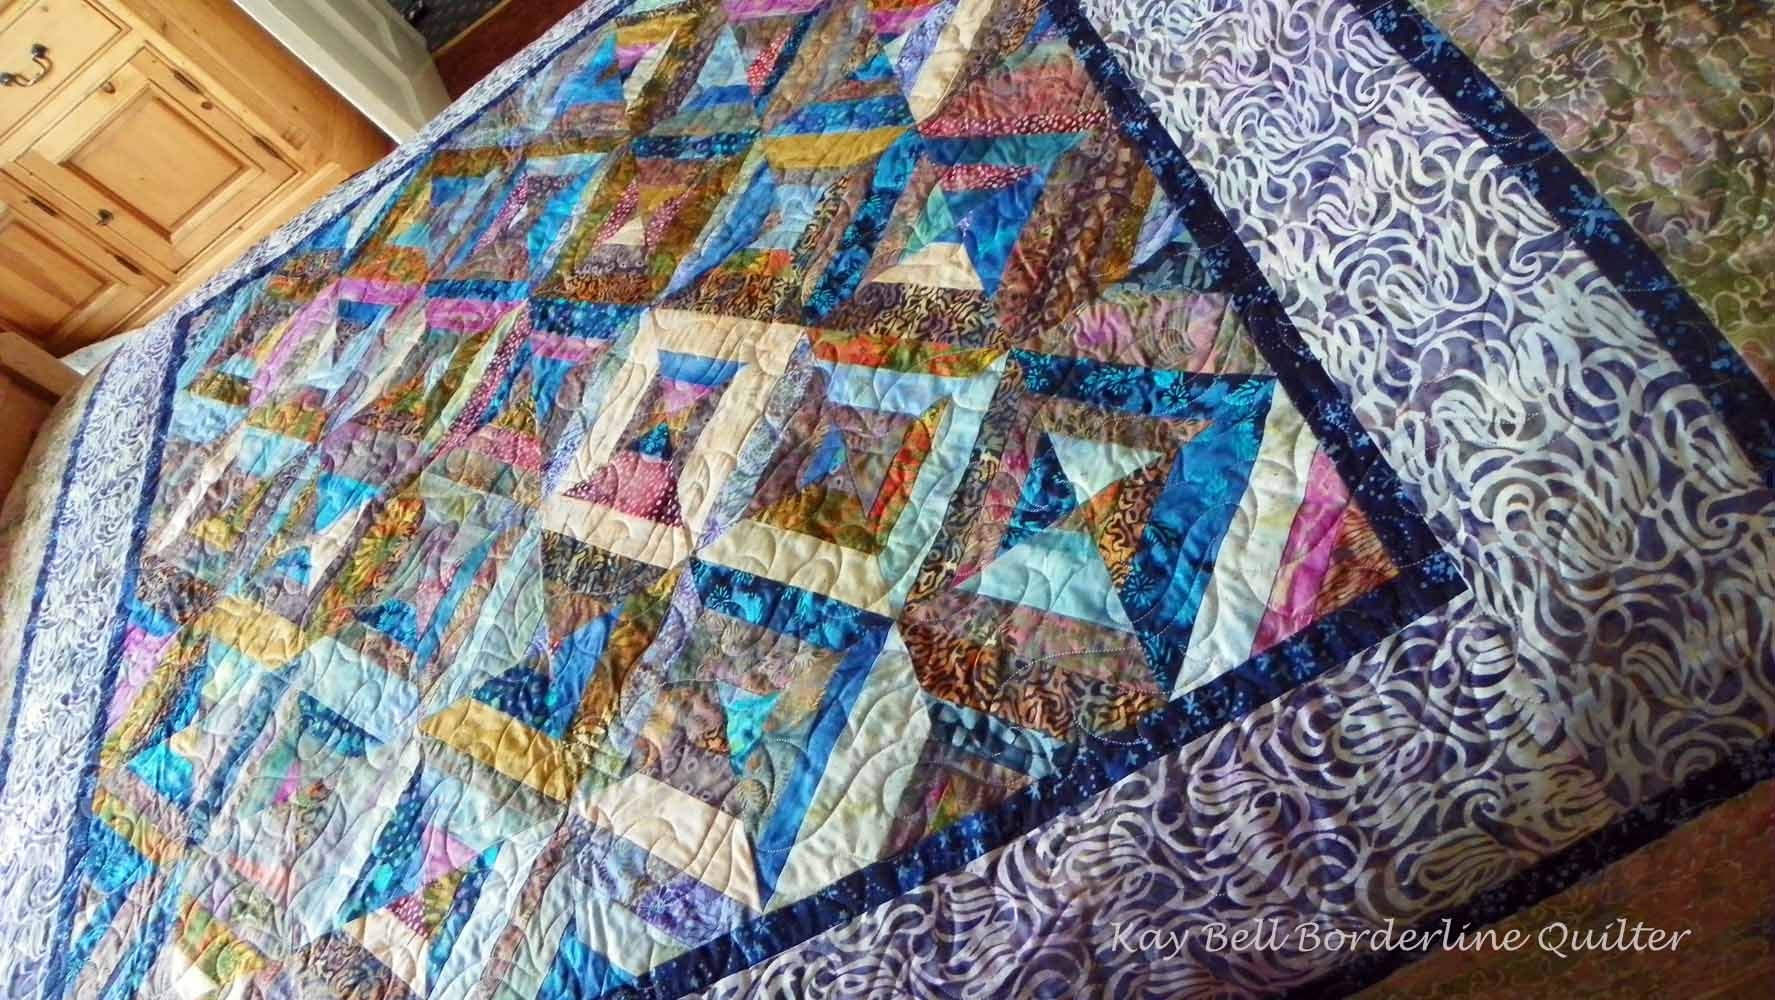 Anne's beautiful batik quilt